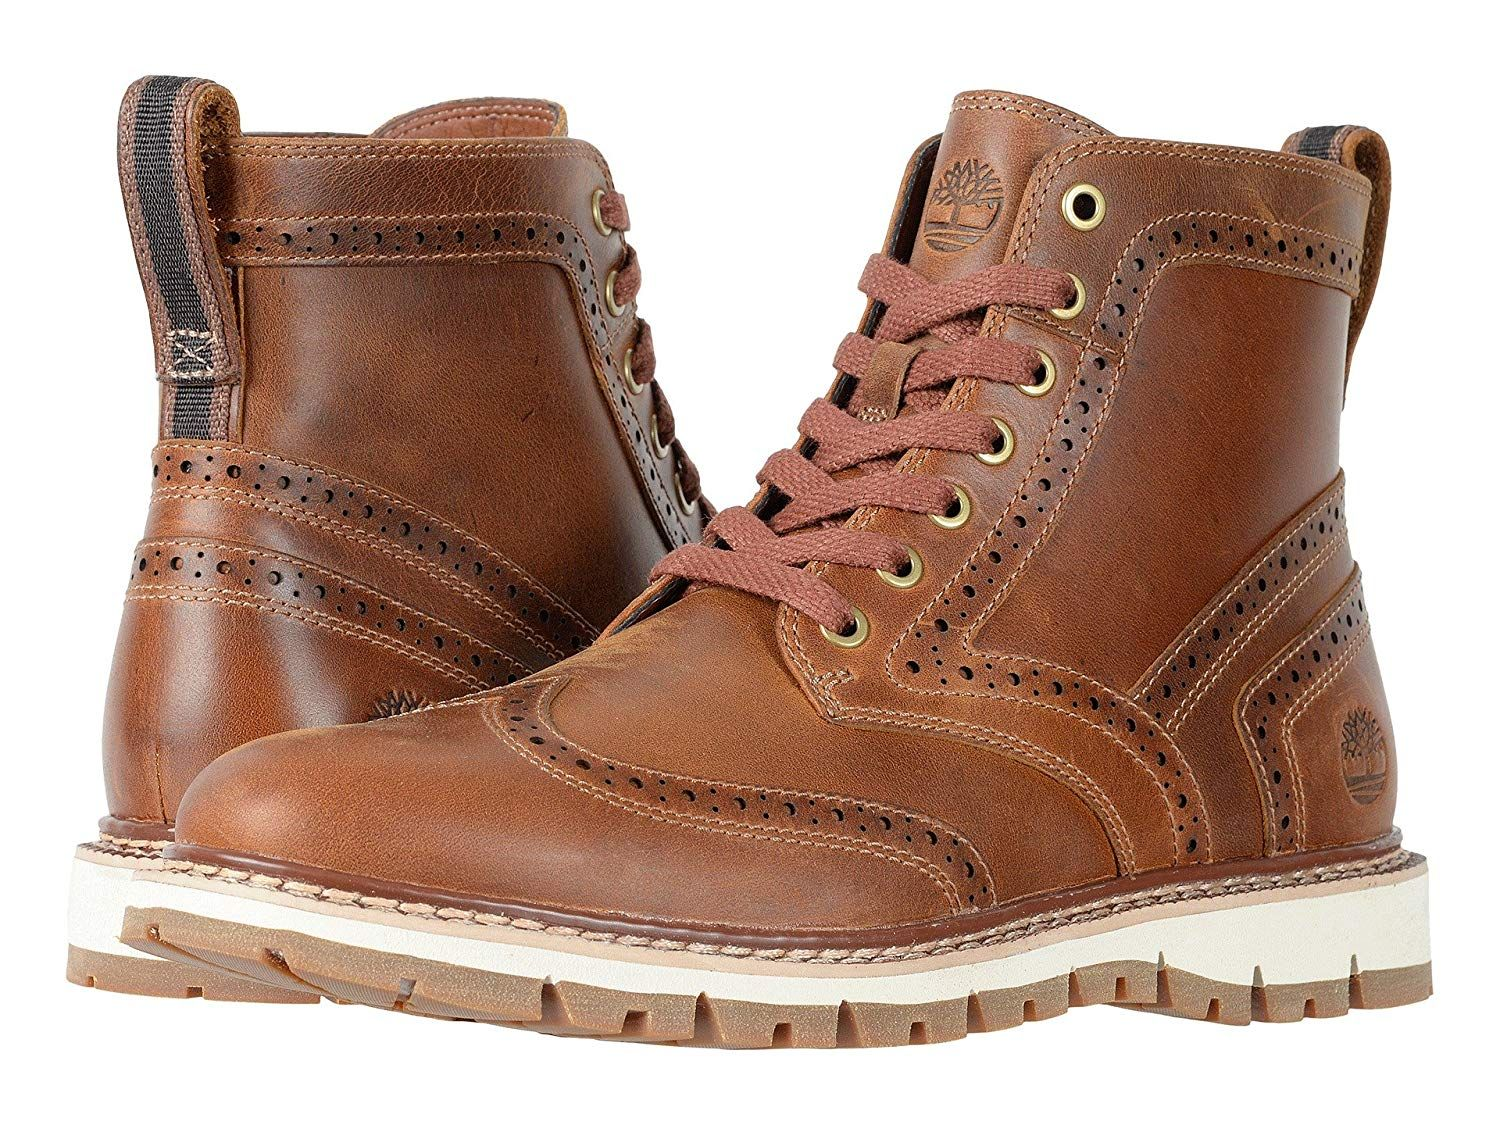 f9050671ada44a Timberland Men s Britton Hill Moc-Toe Waterproof Boot   Many thanks for  viewing our photo. (This is an affiliate link)  timberlandbootsforbaby